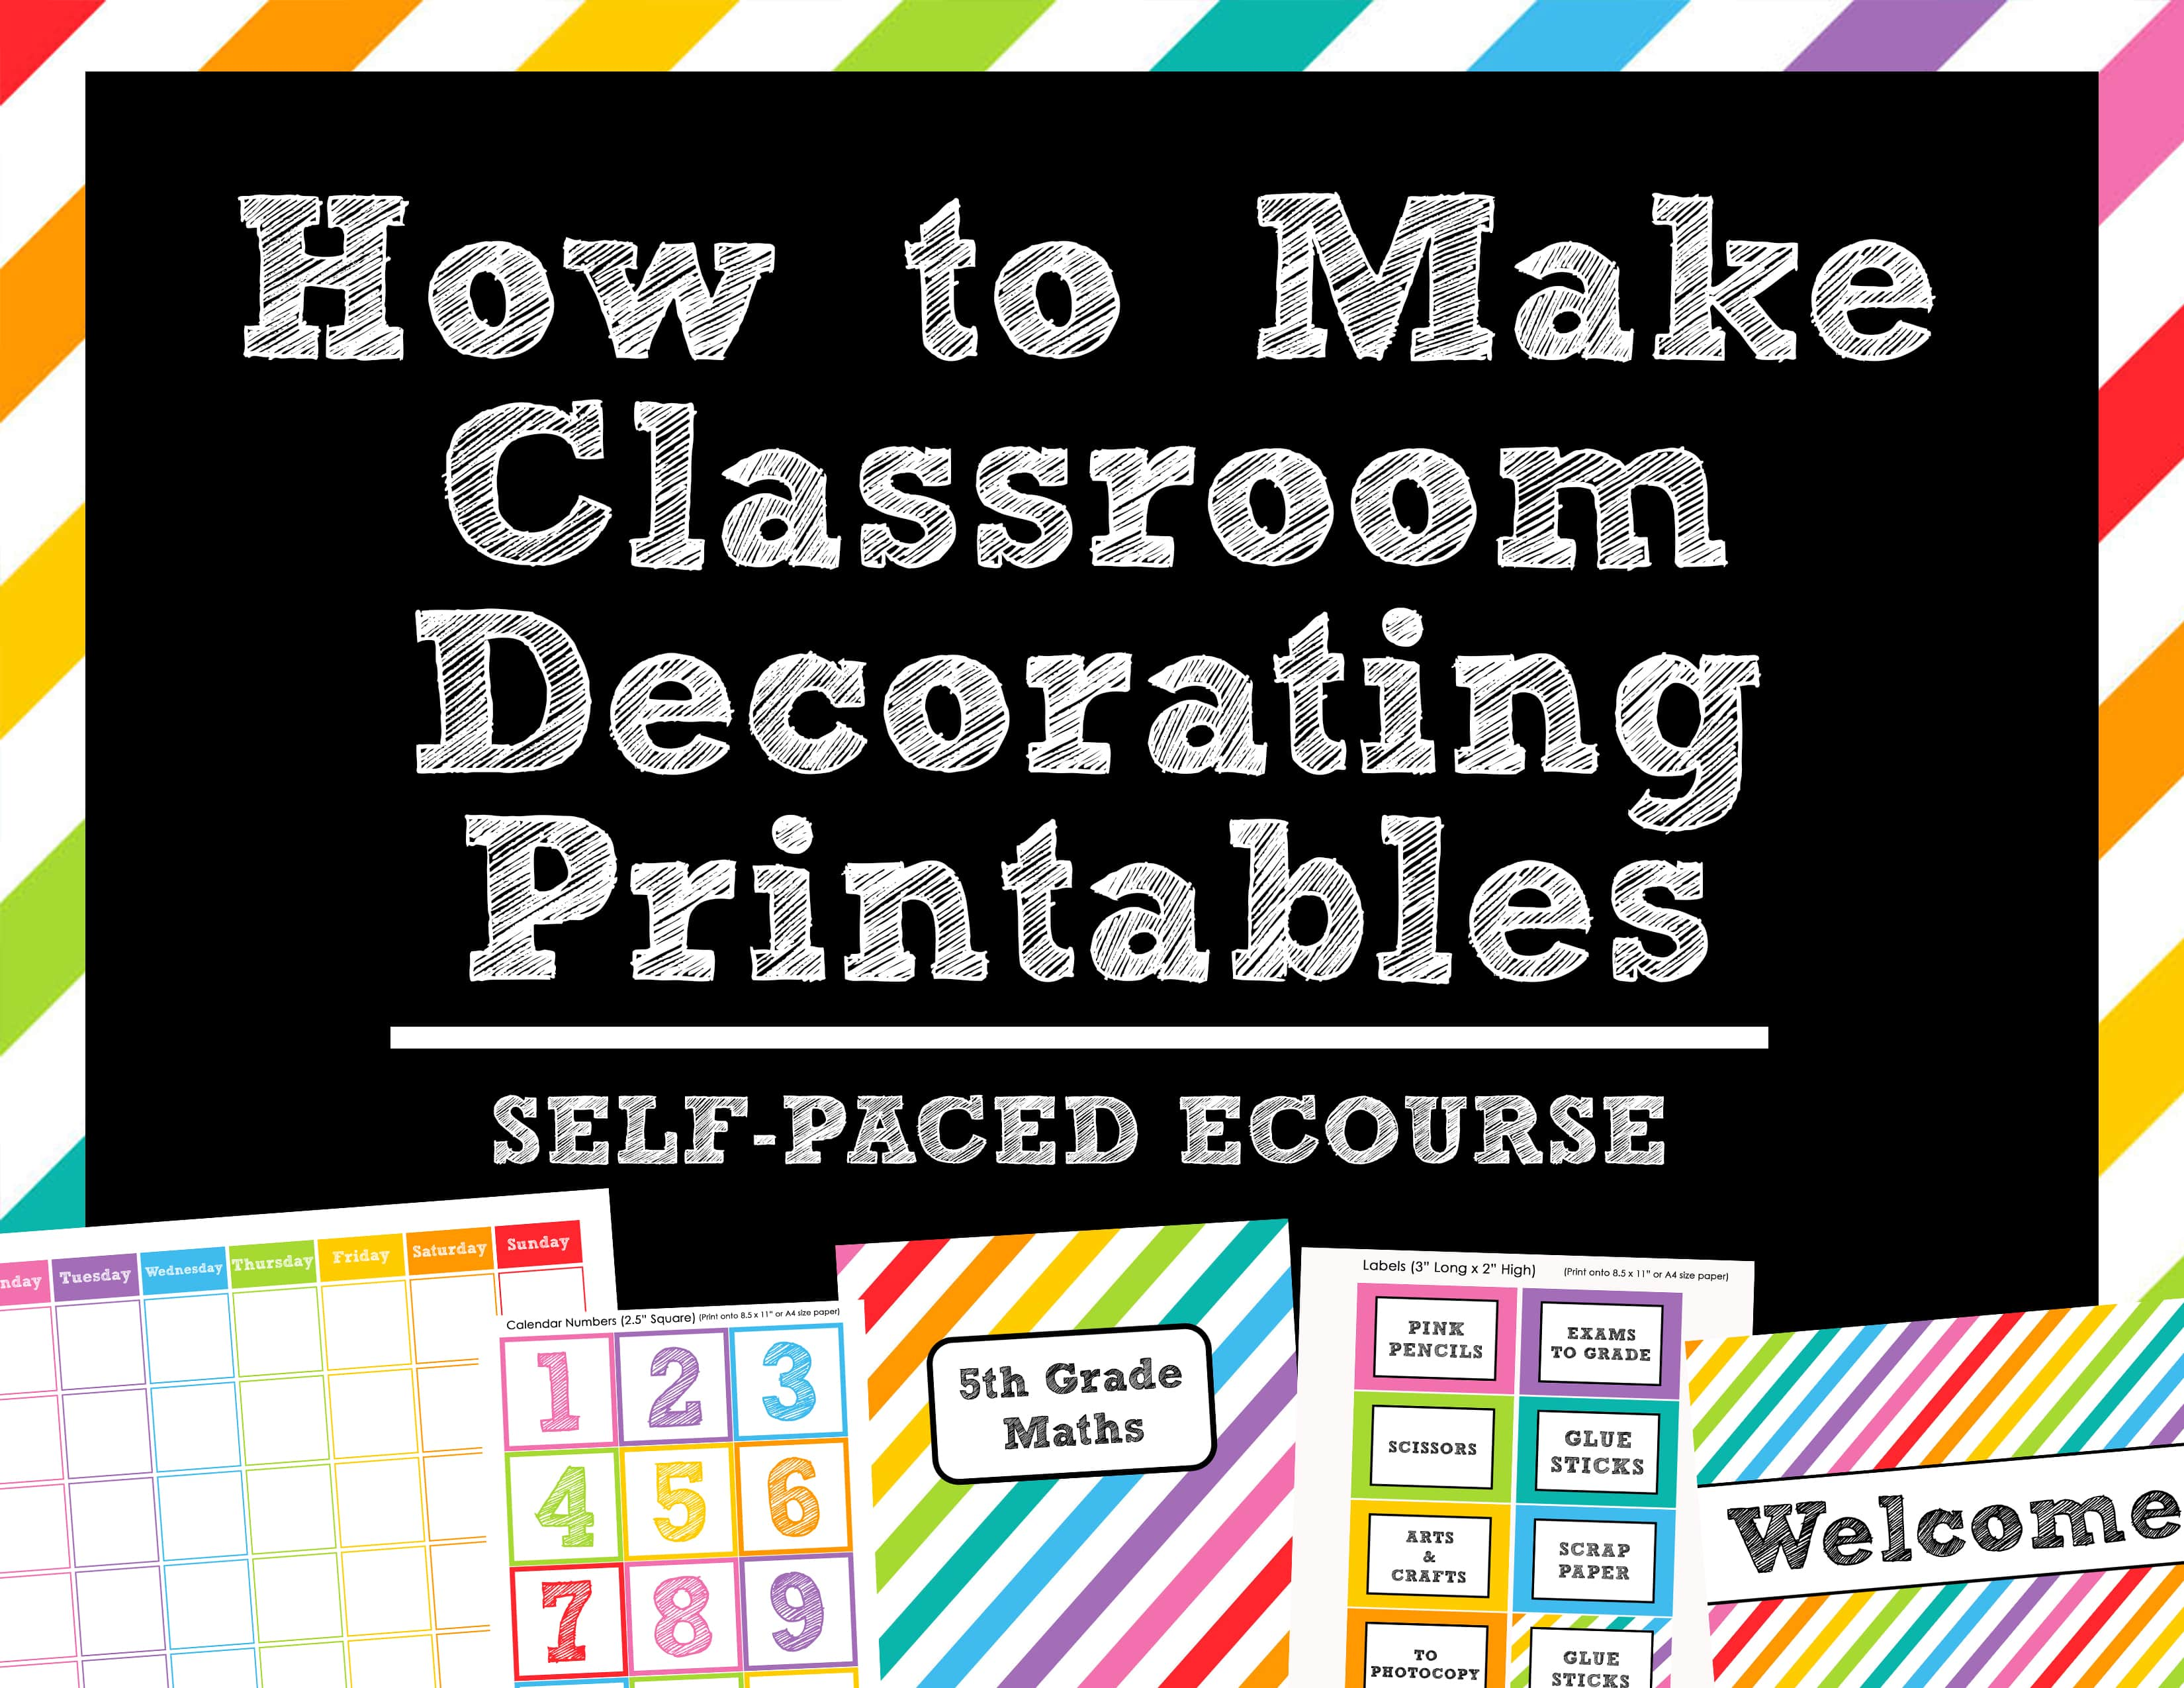 How to make teaching printables and classroom decorating kits to ...